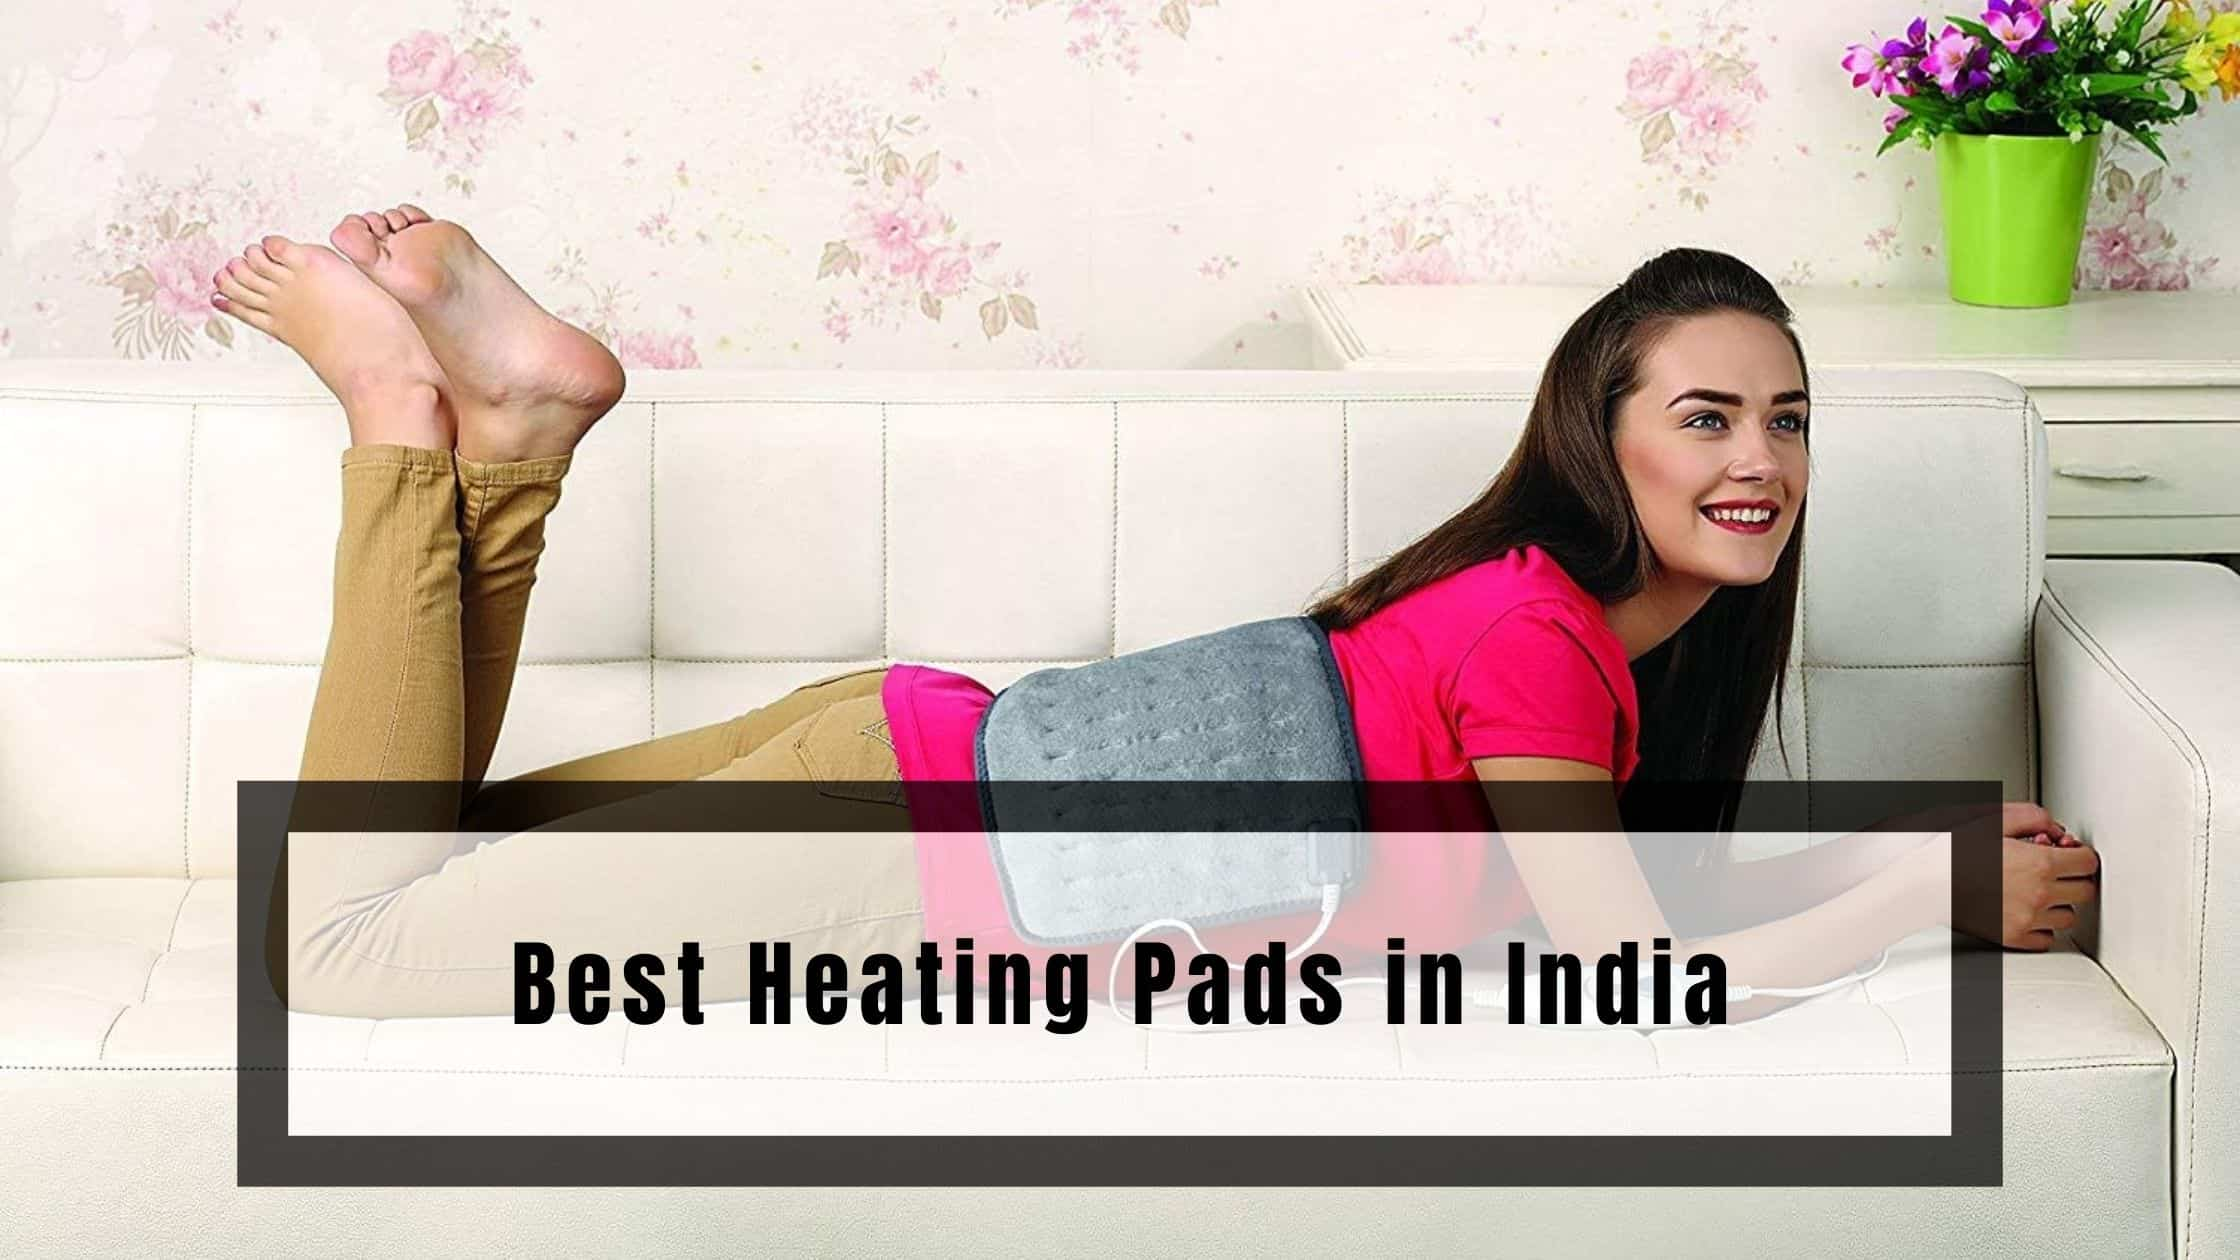 Best Heating Pads in India